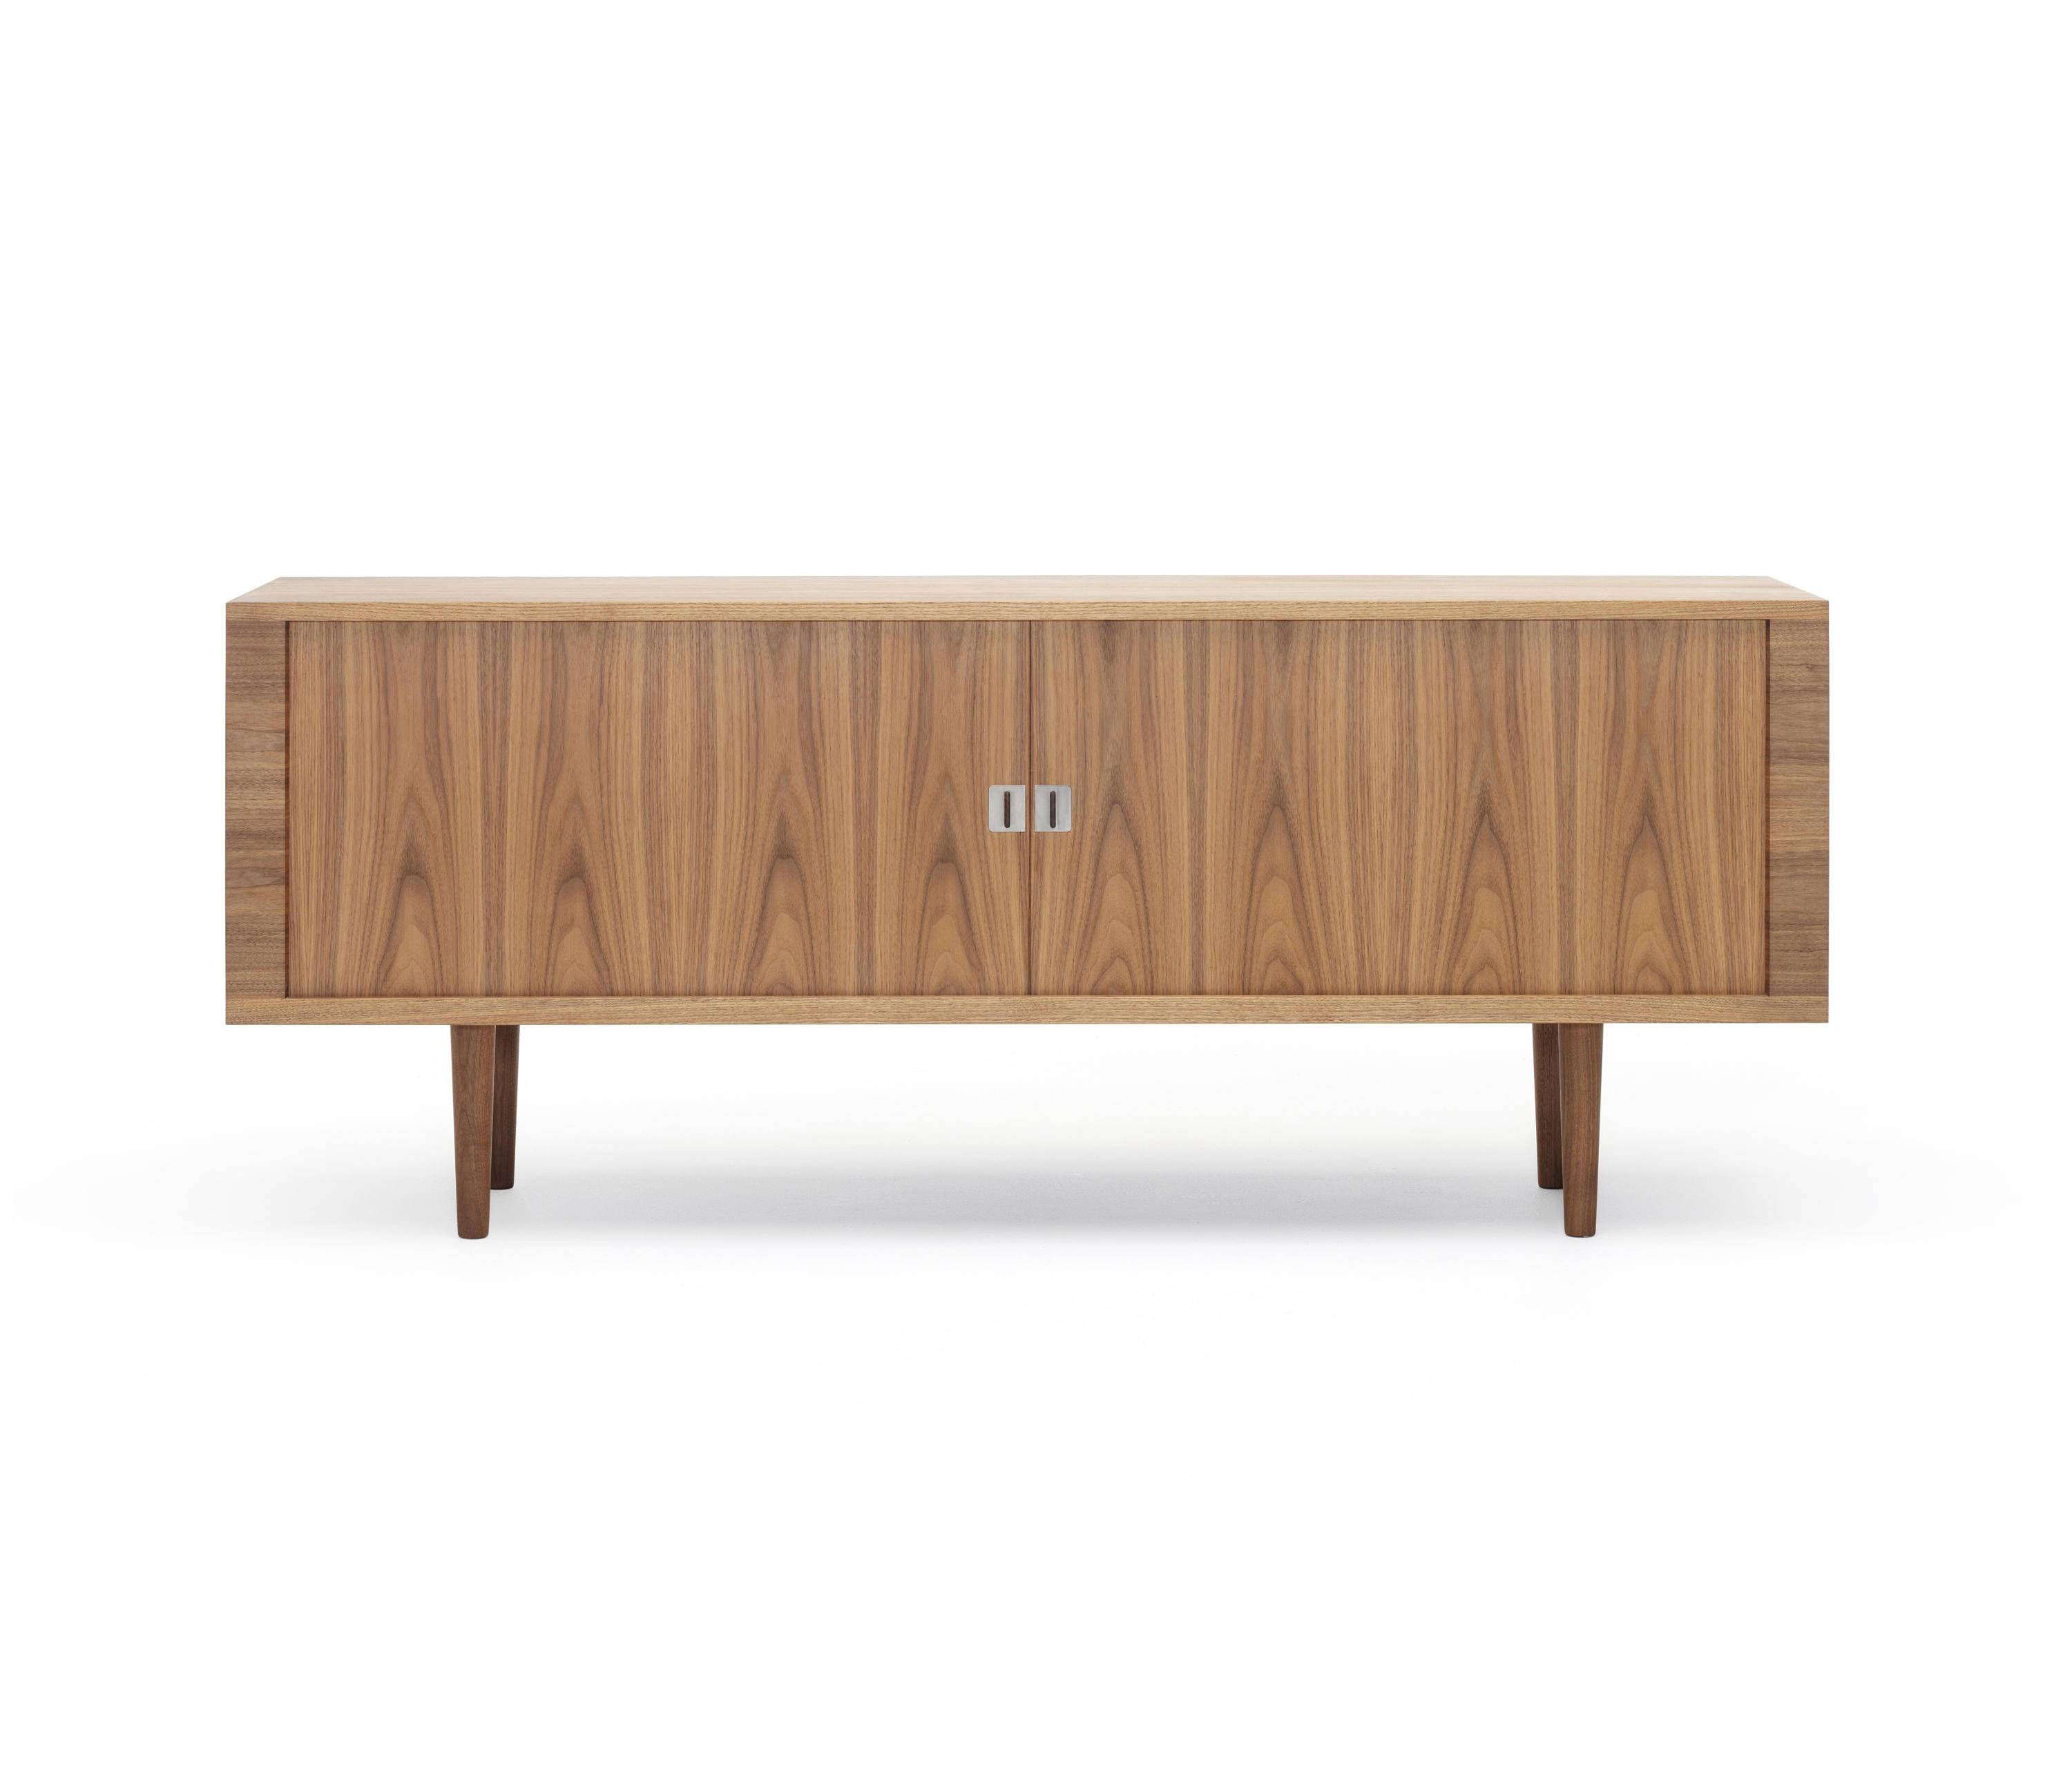 Ch825 Credenza - Sideboards From Carl Hansen & Søn | Architonic with regard to Credenza Sideboards (Image 2 of 15)